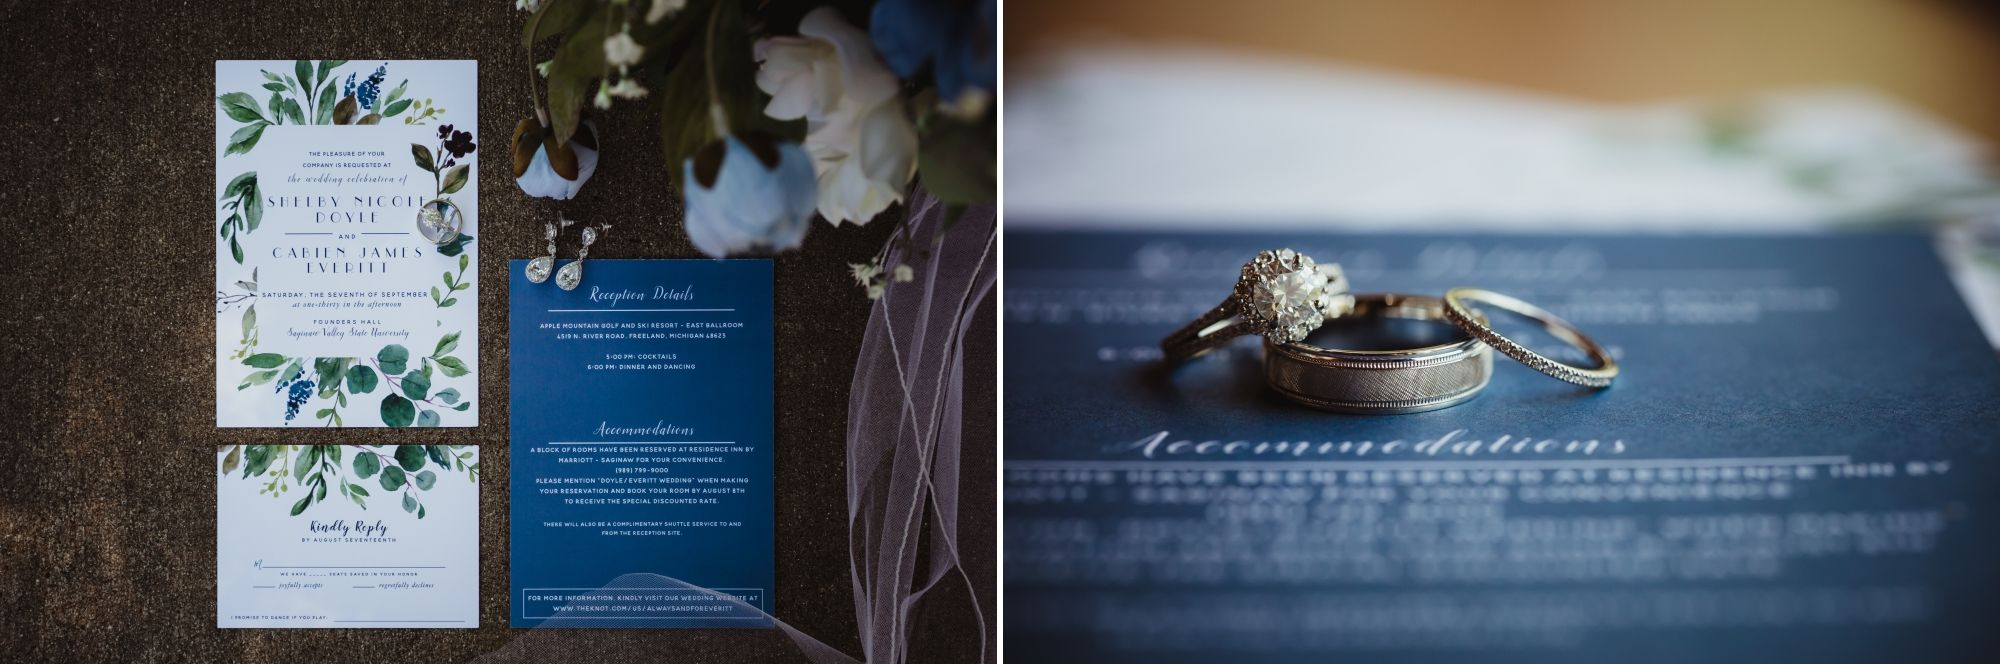 Photos of the wedding invitations, RSVP card, and wedding rings.